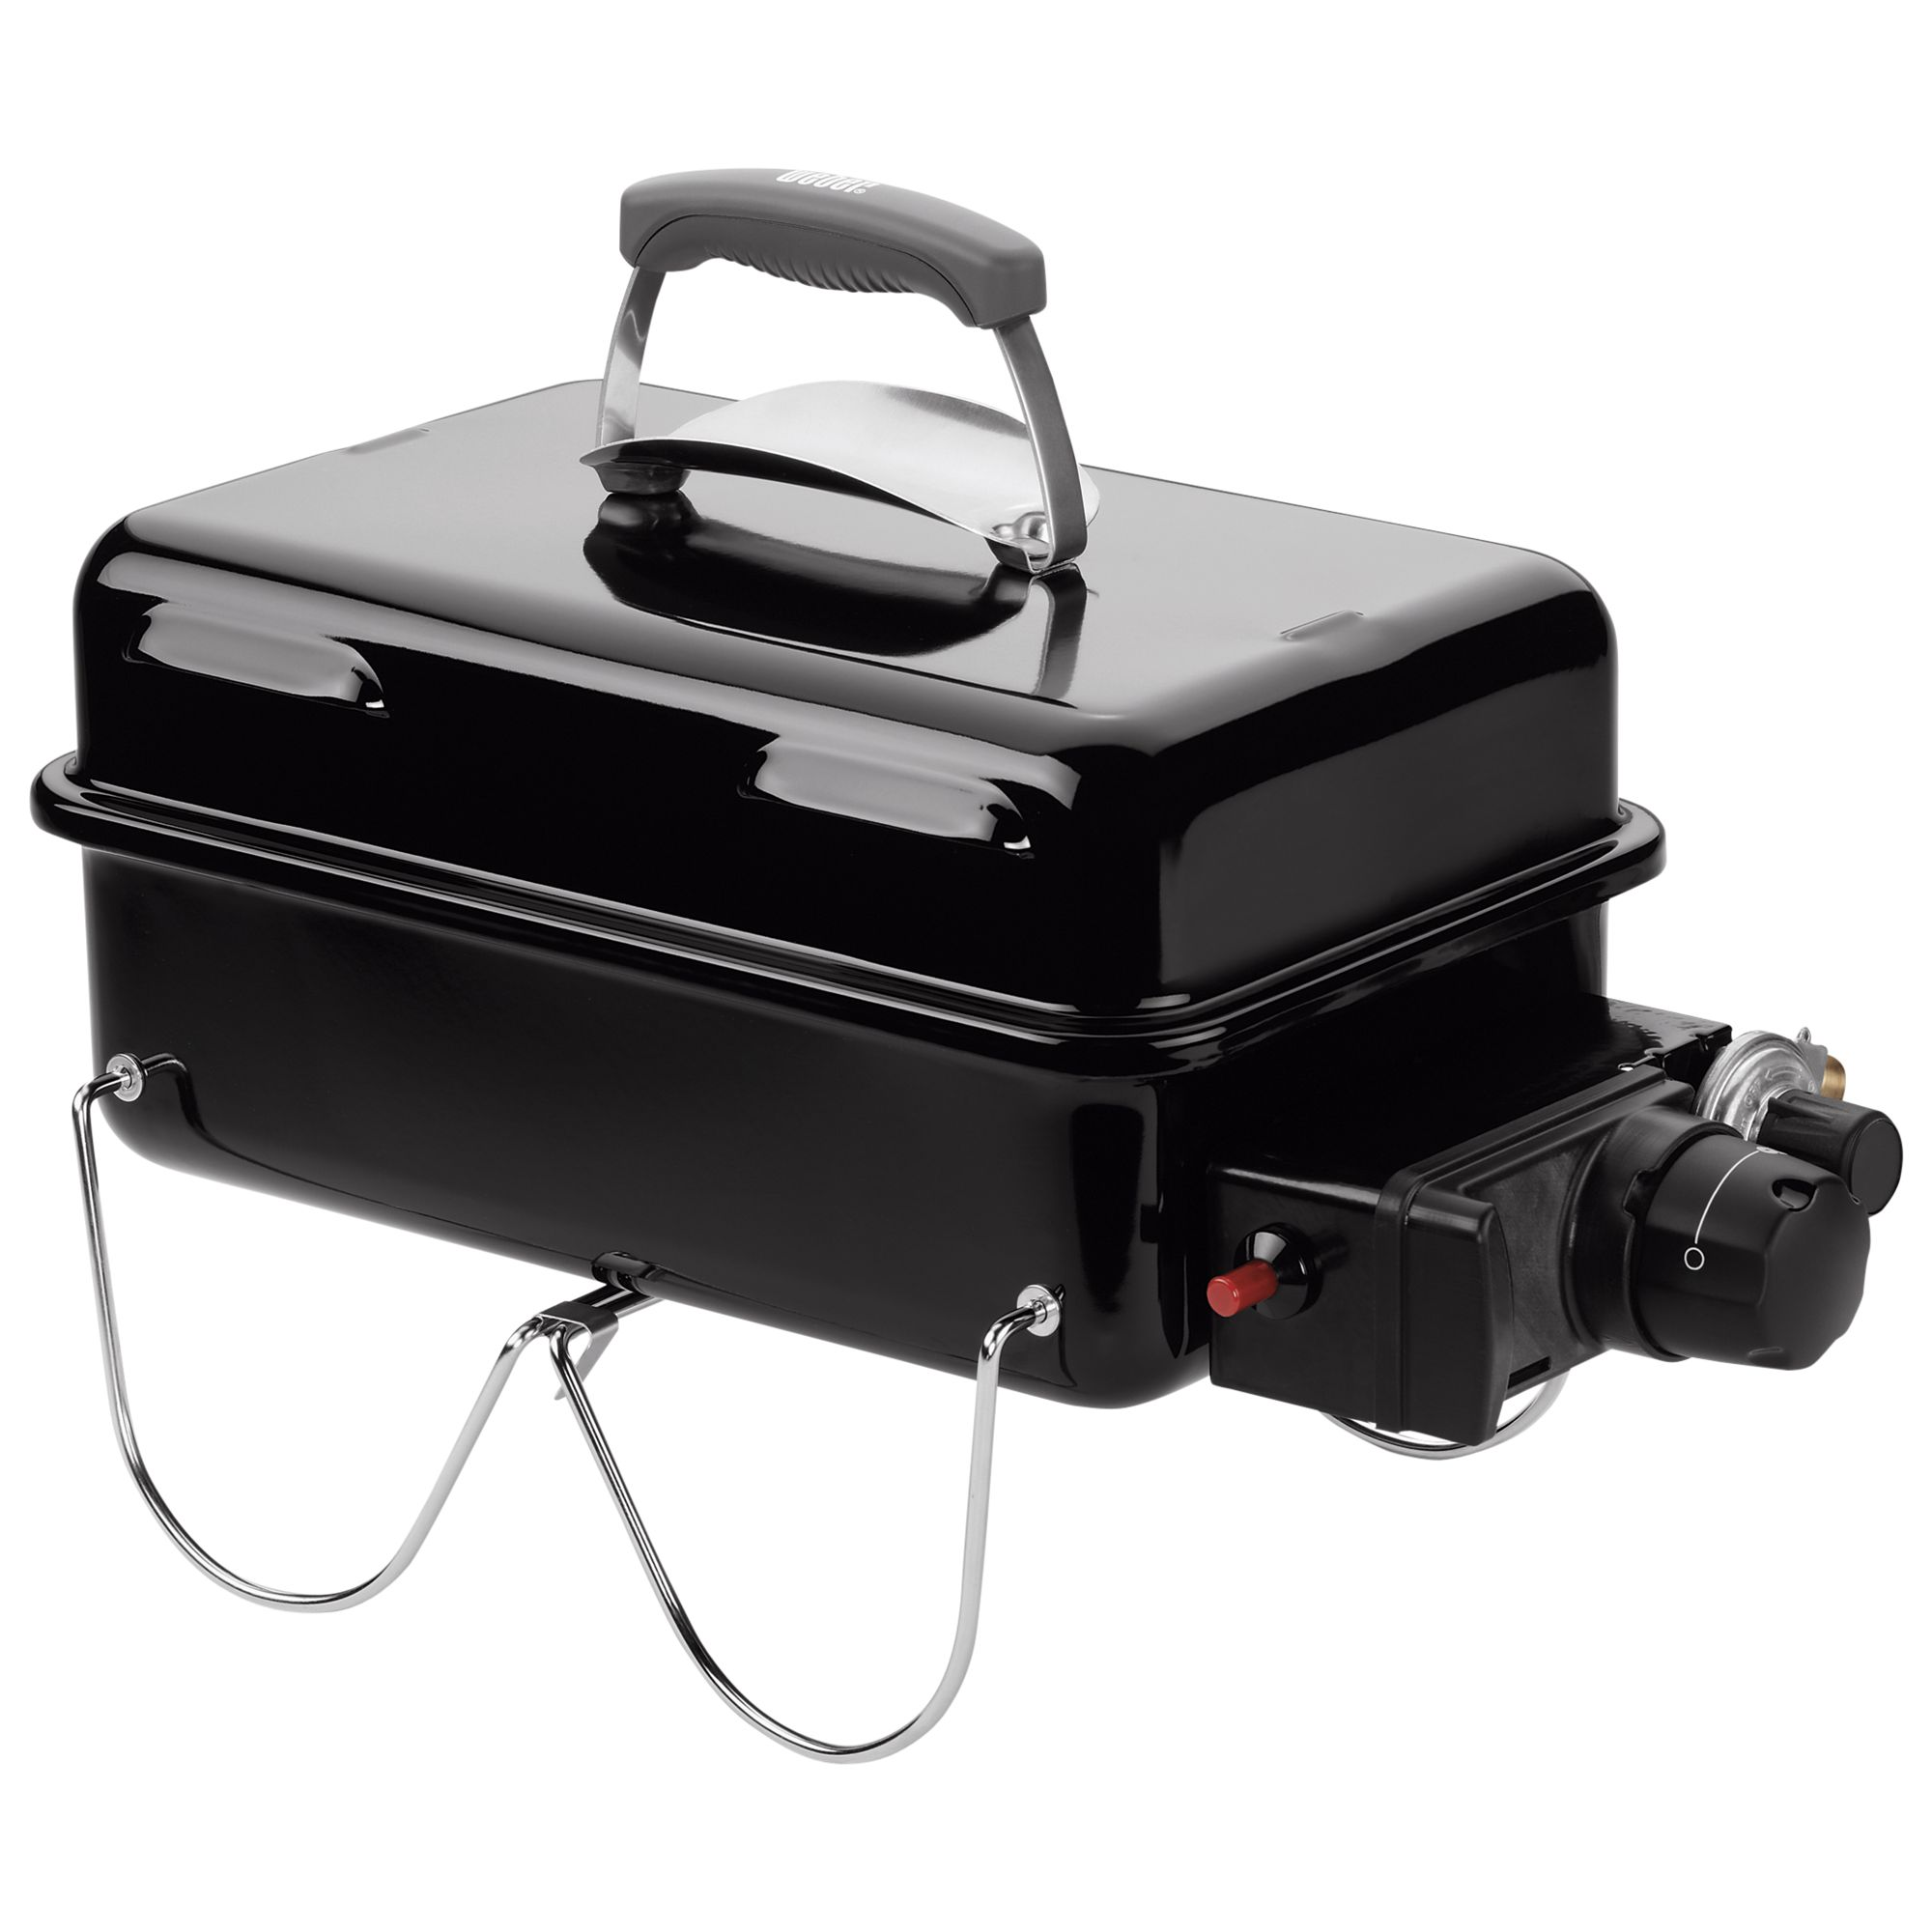 Weber Go Anywhere 1 Burner Gas Barbecue, Black